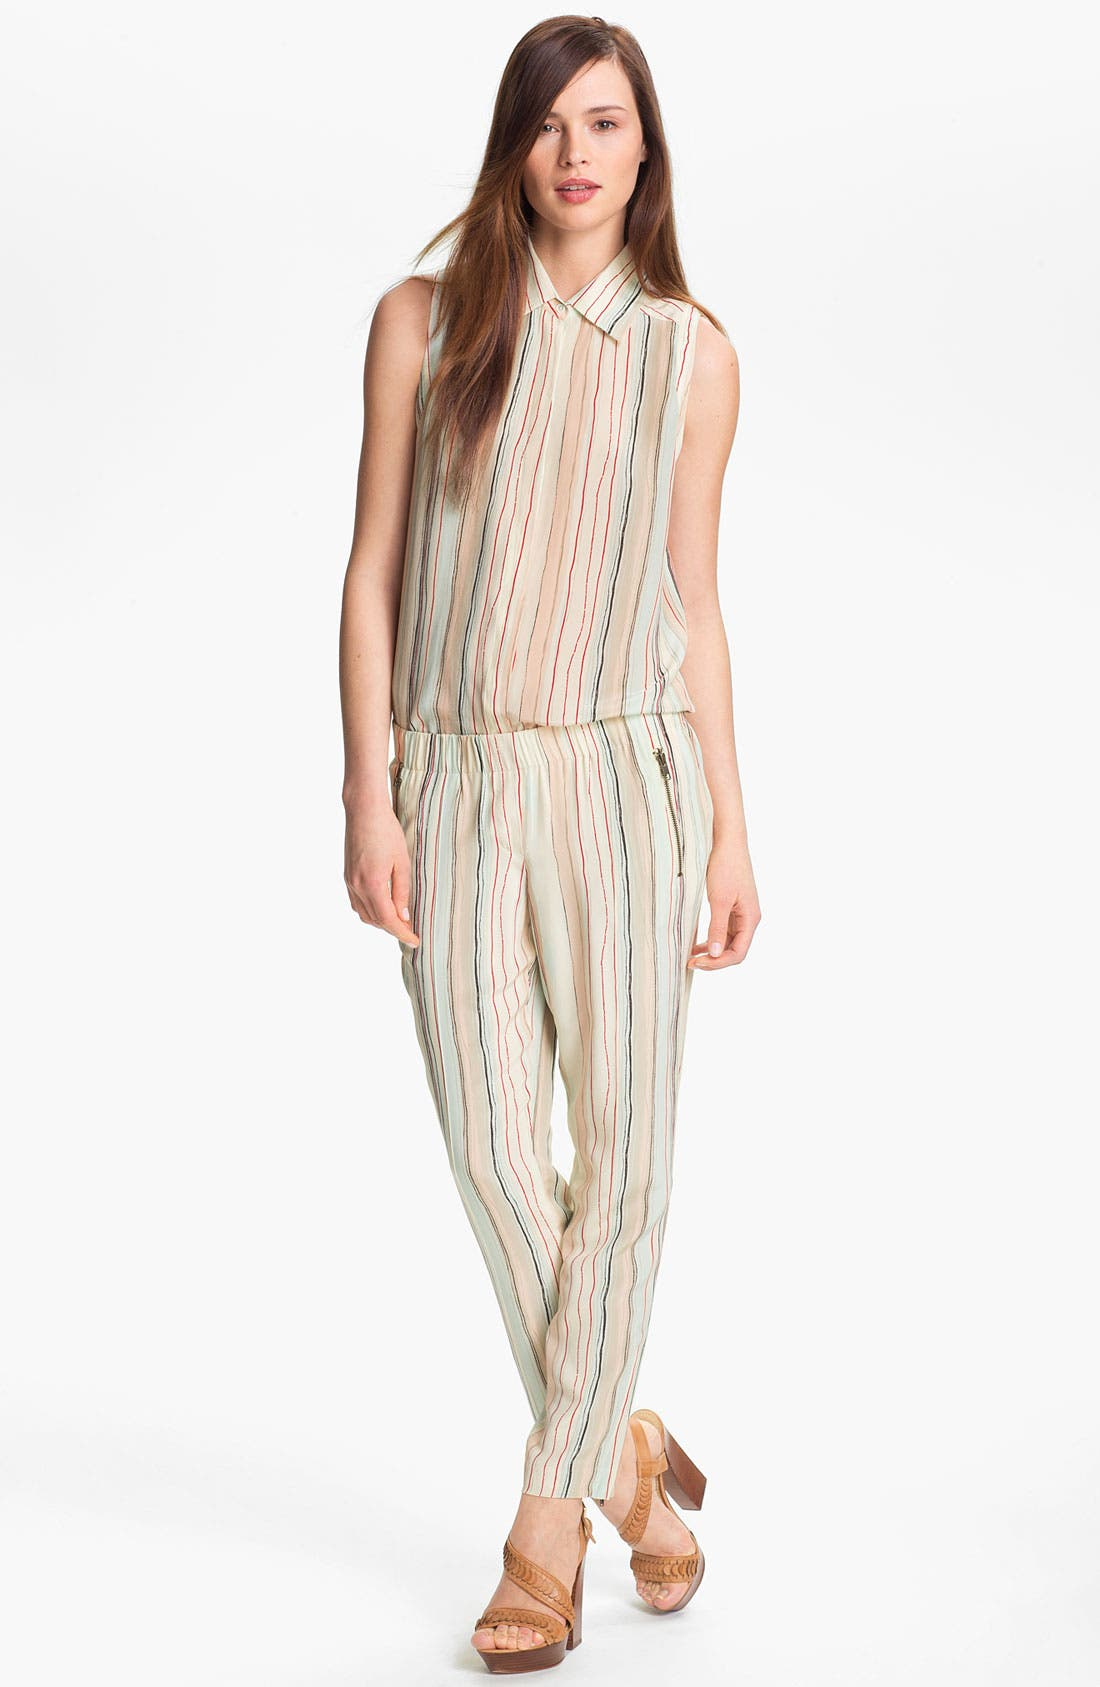 Alternate Image 1 Selected - Rachel Zoe 'Geri II' Sleeveless Shirt